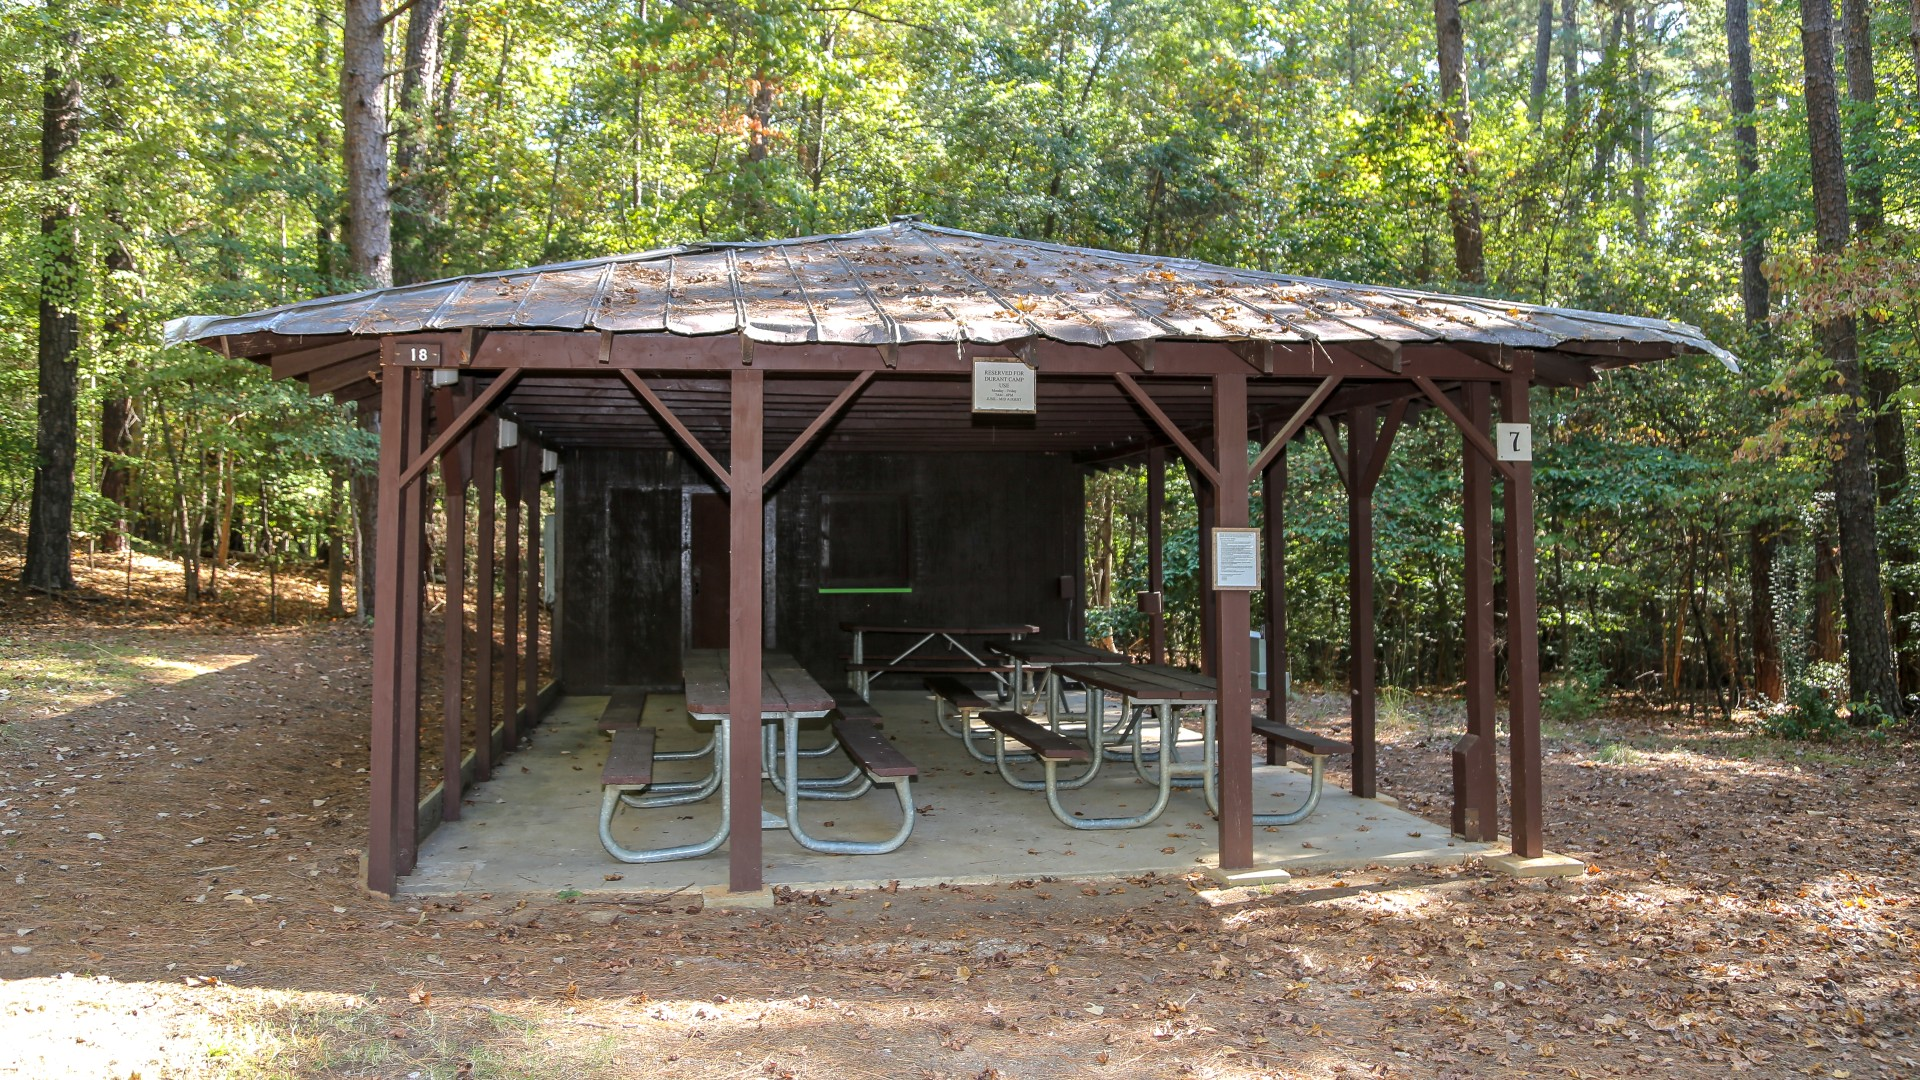 A third outdoor picnic shelter